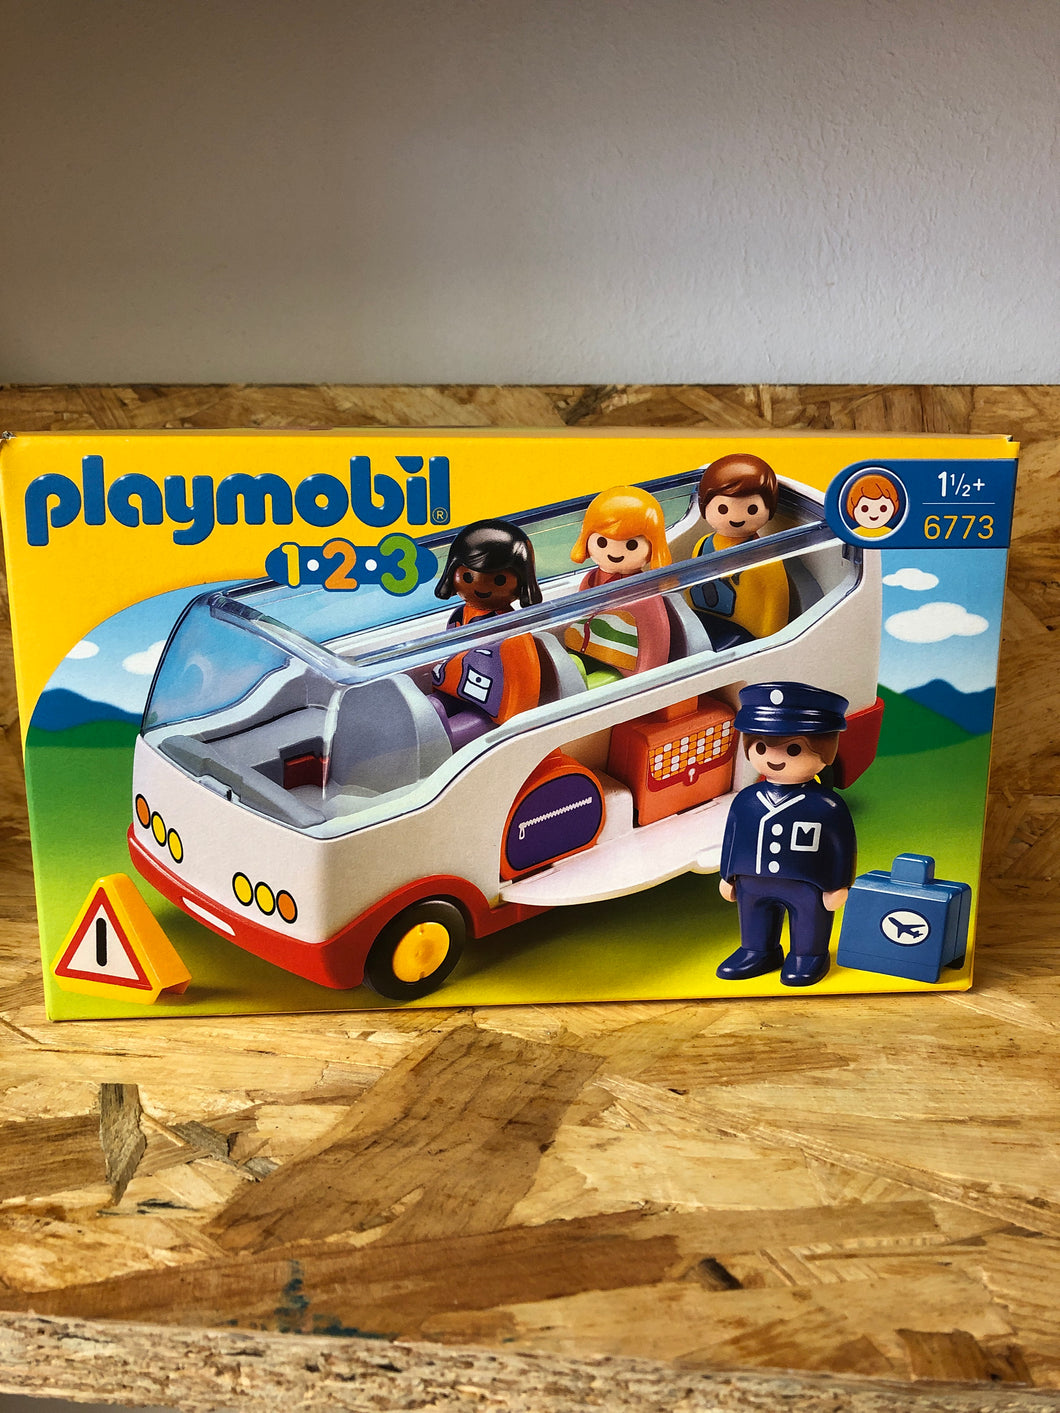 Playmobil 123 - Airport Shuttle Bus